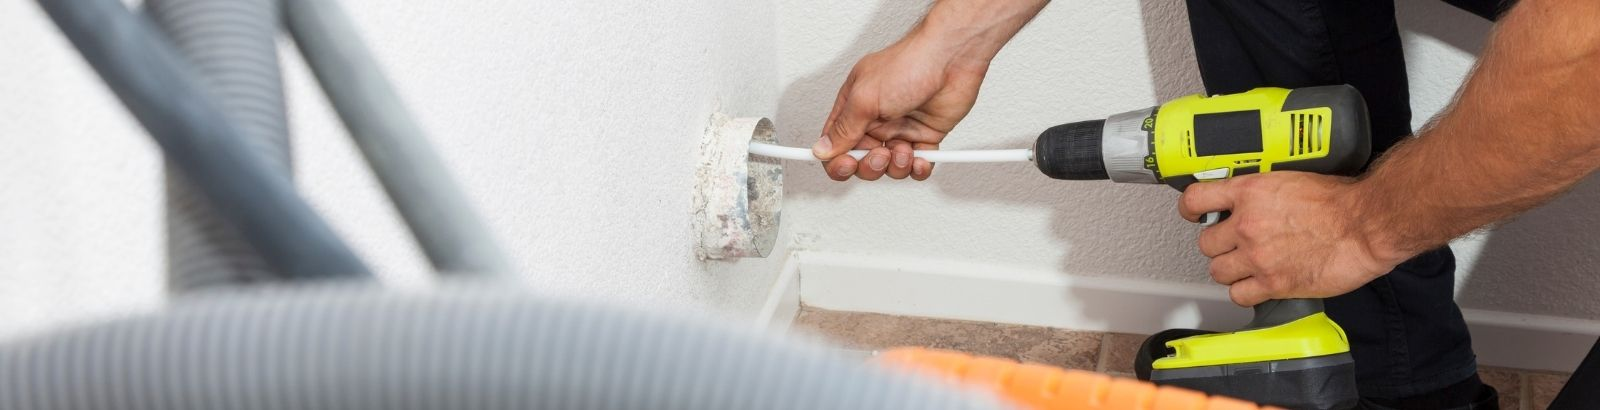 dryer vent cleaning service katy texas